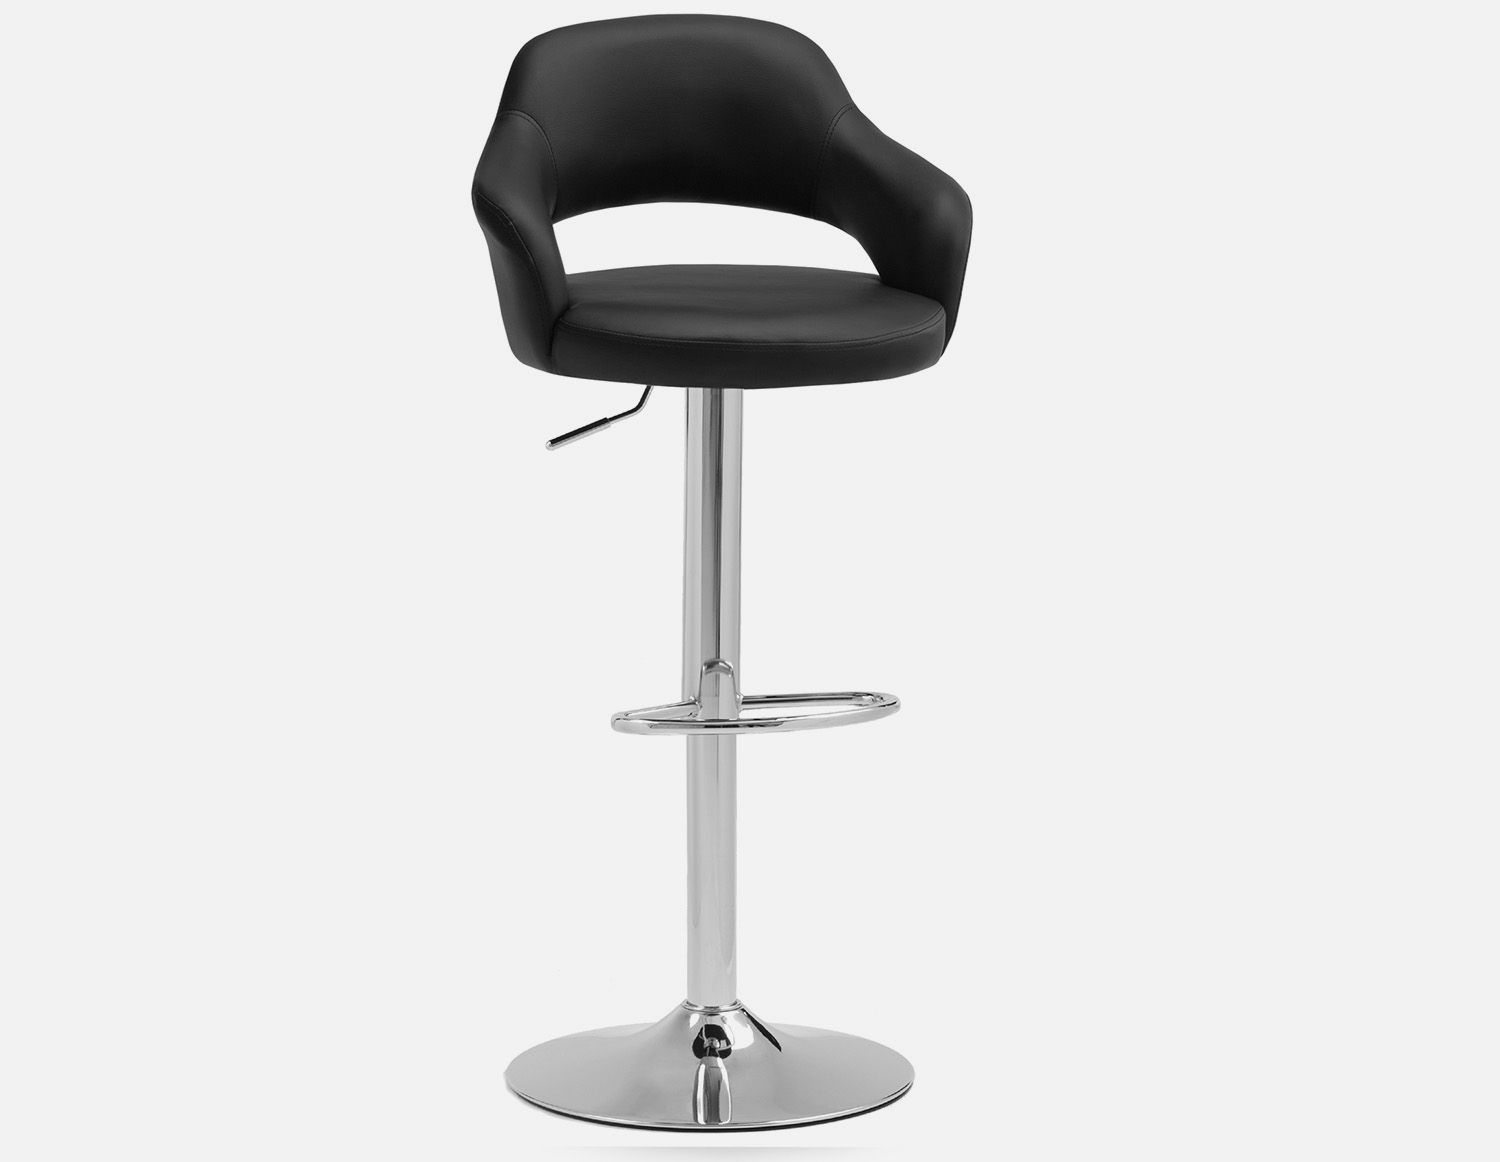 Super Riko Black Adjustable Stool 87Cm To 109Cm Products In 2019 Caraccident5 Cool Chair Designs And Ideas Caraccident5Info